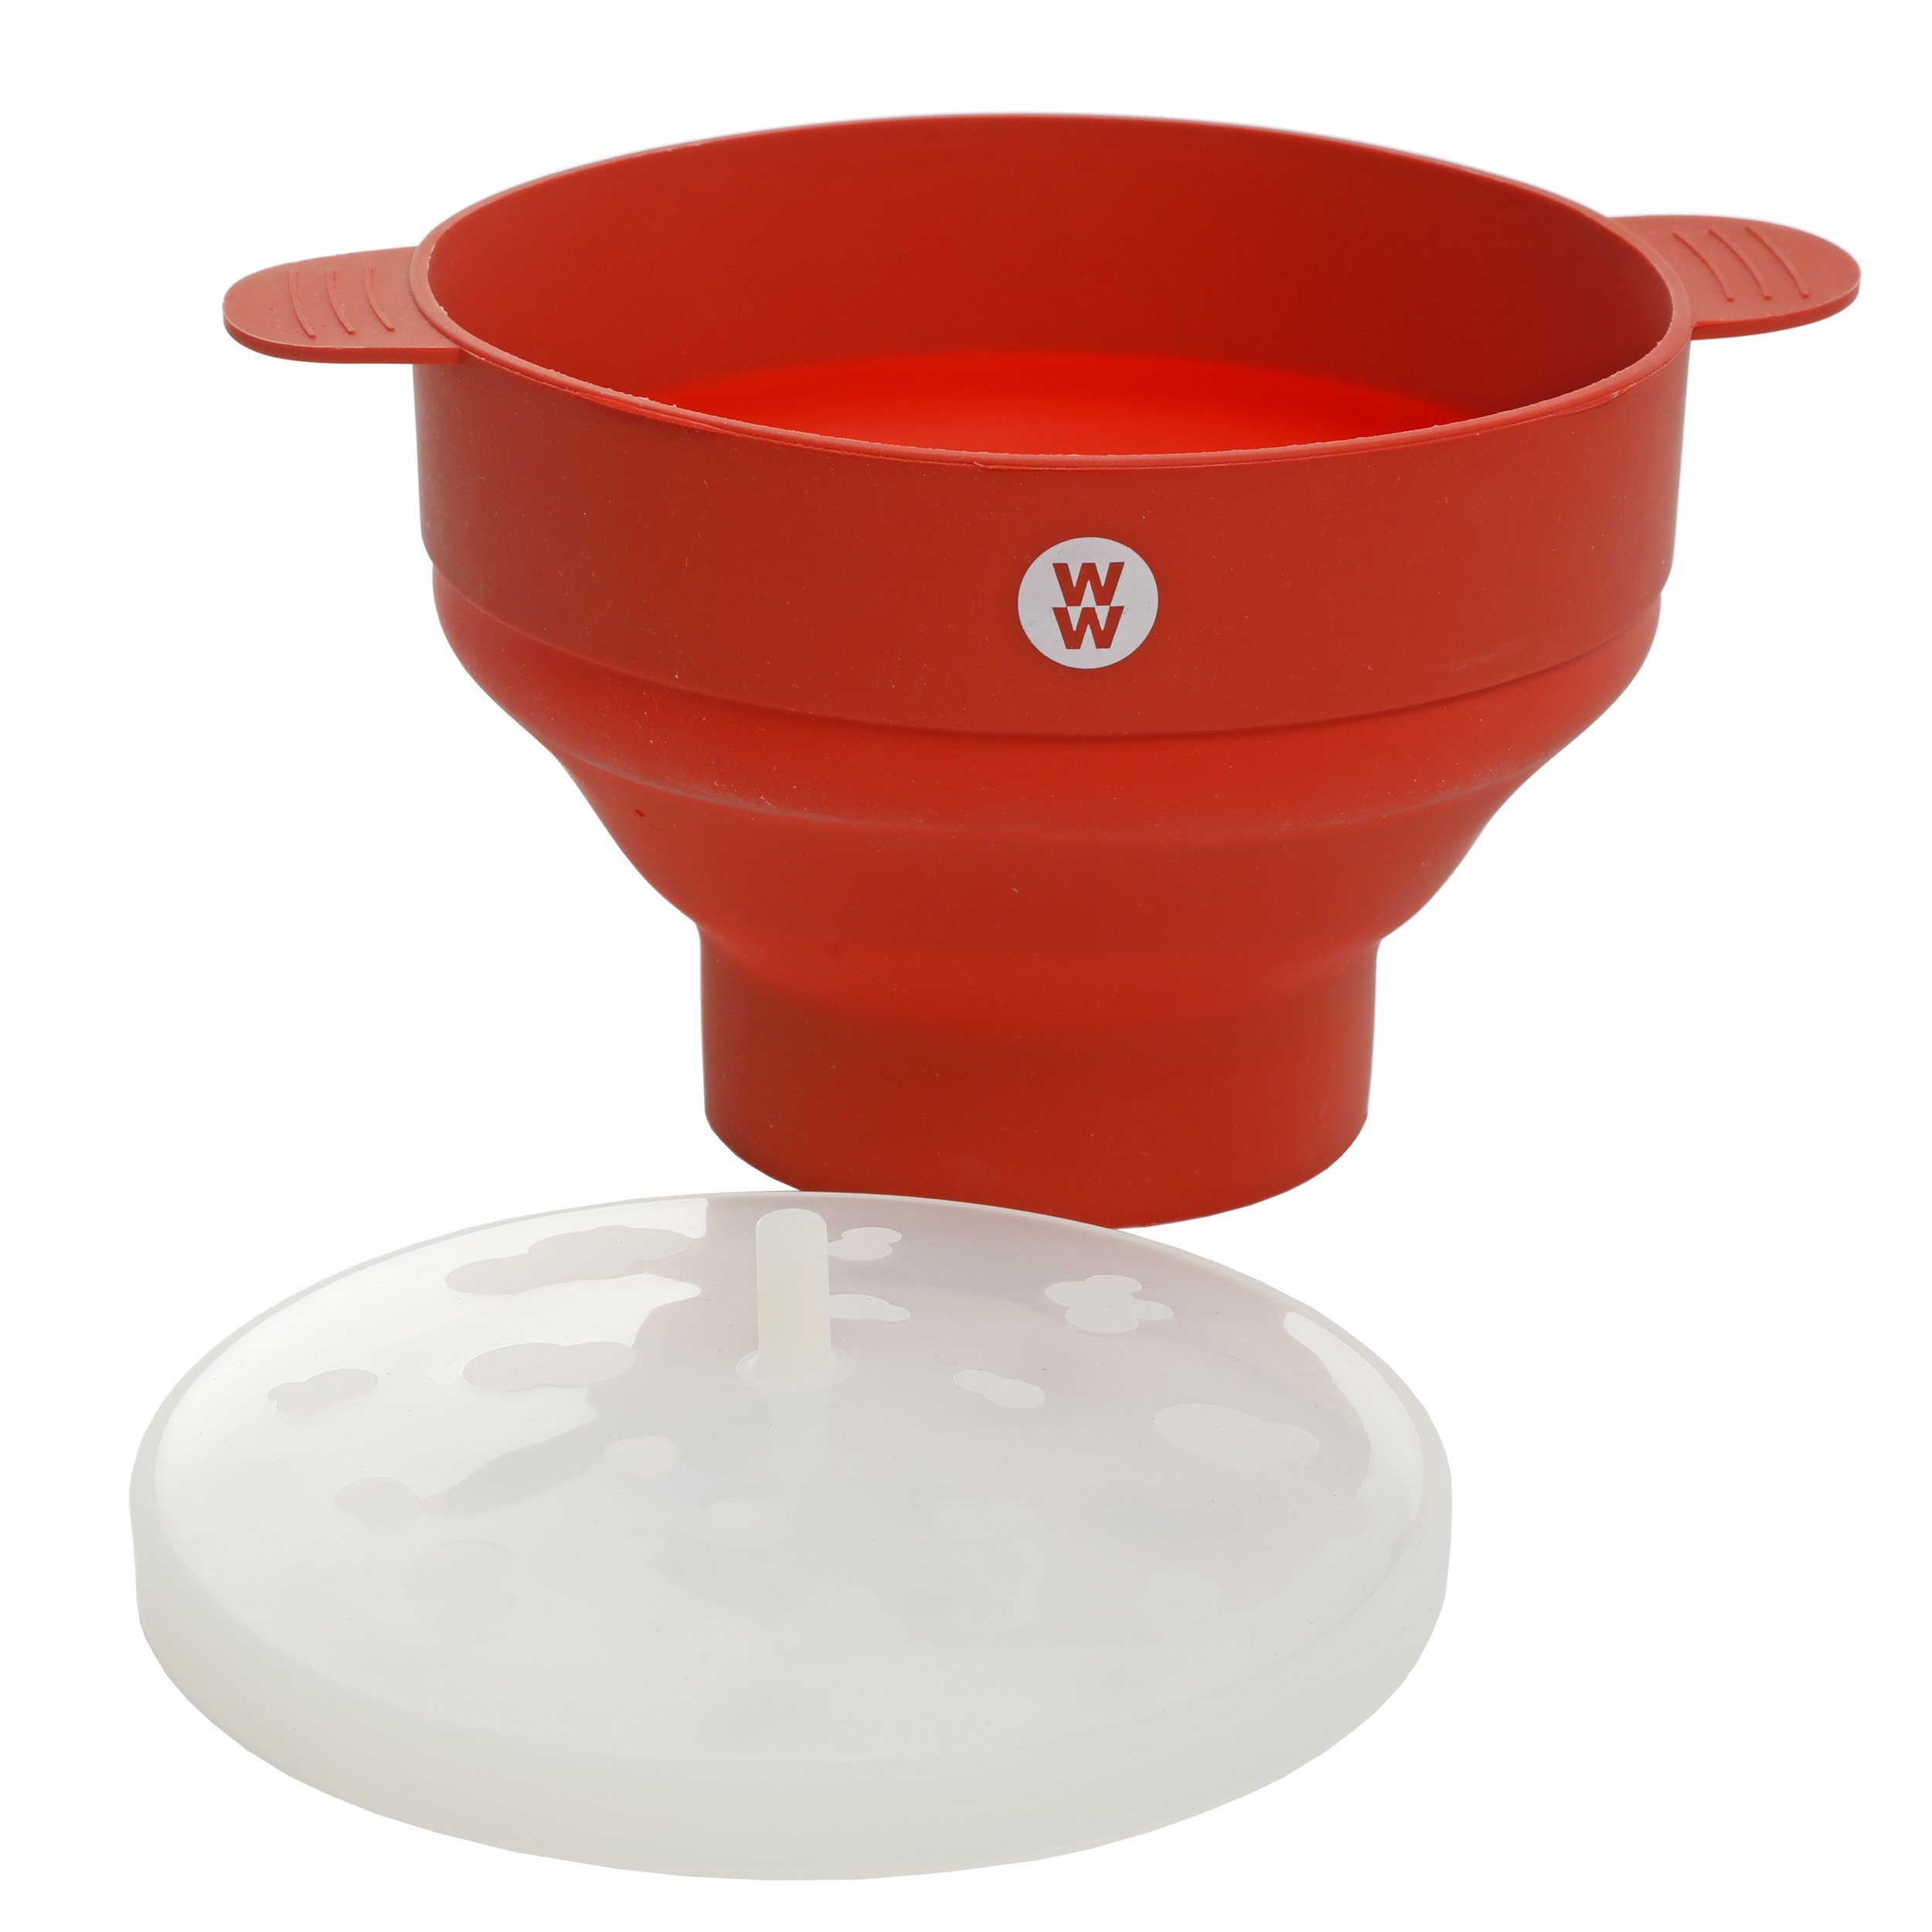 Weight Watchers 116916.01 Elmsley 9.5 x 6 Inch Silicone Microwave Pop Corn Bowl, Crimson